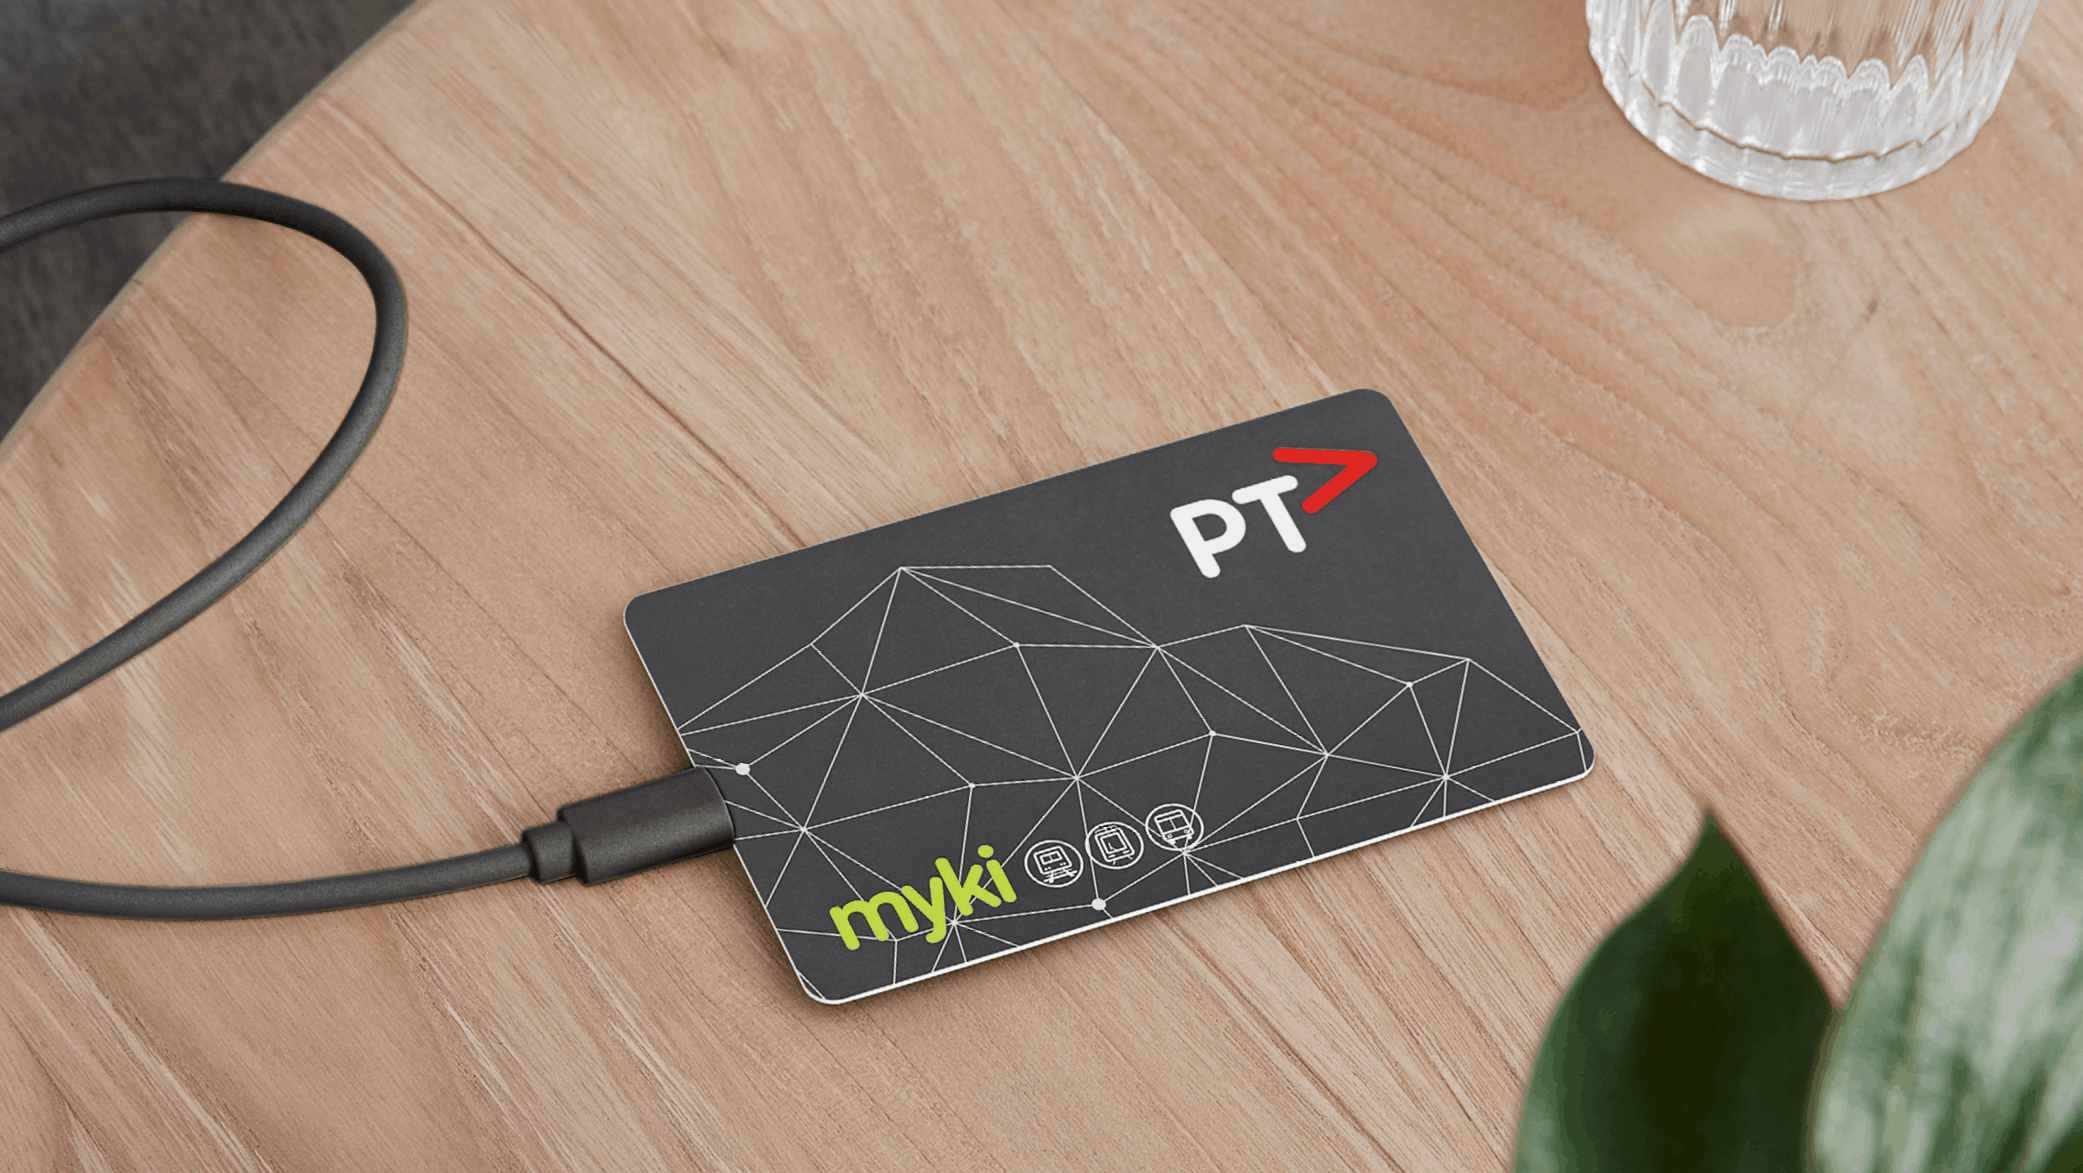 You can now ditch your myki Melbourne card and tap with your phone instead. But there's a catch